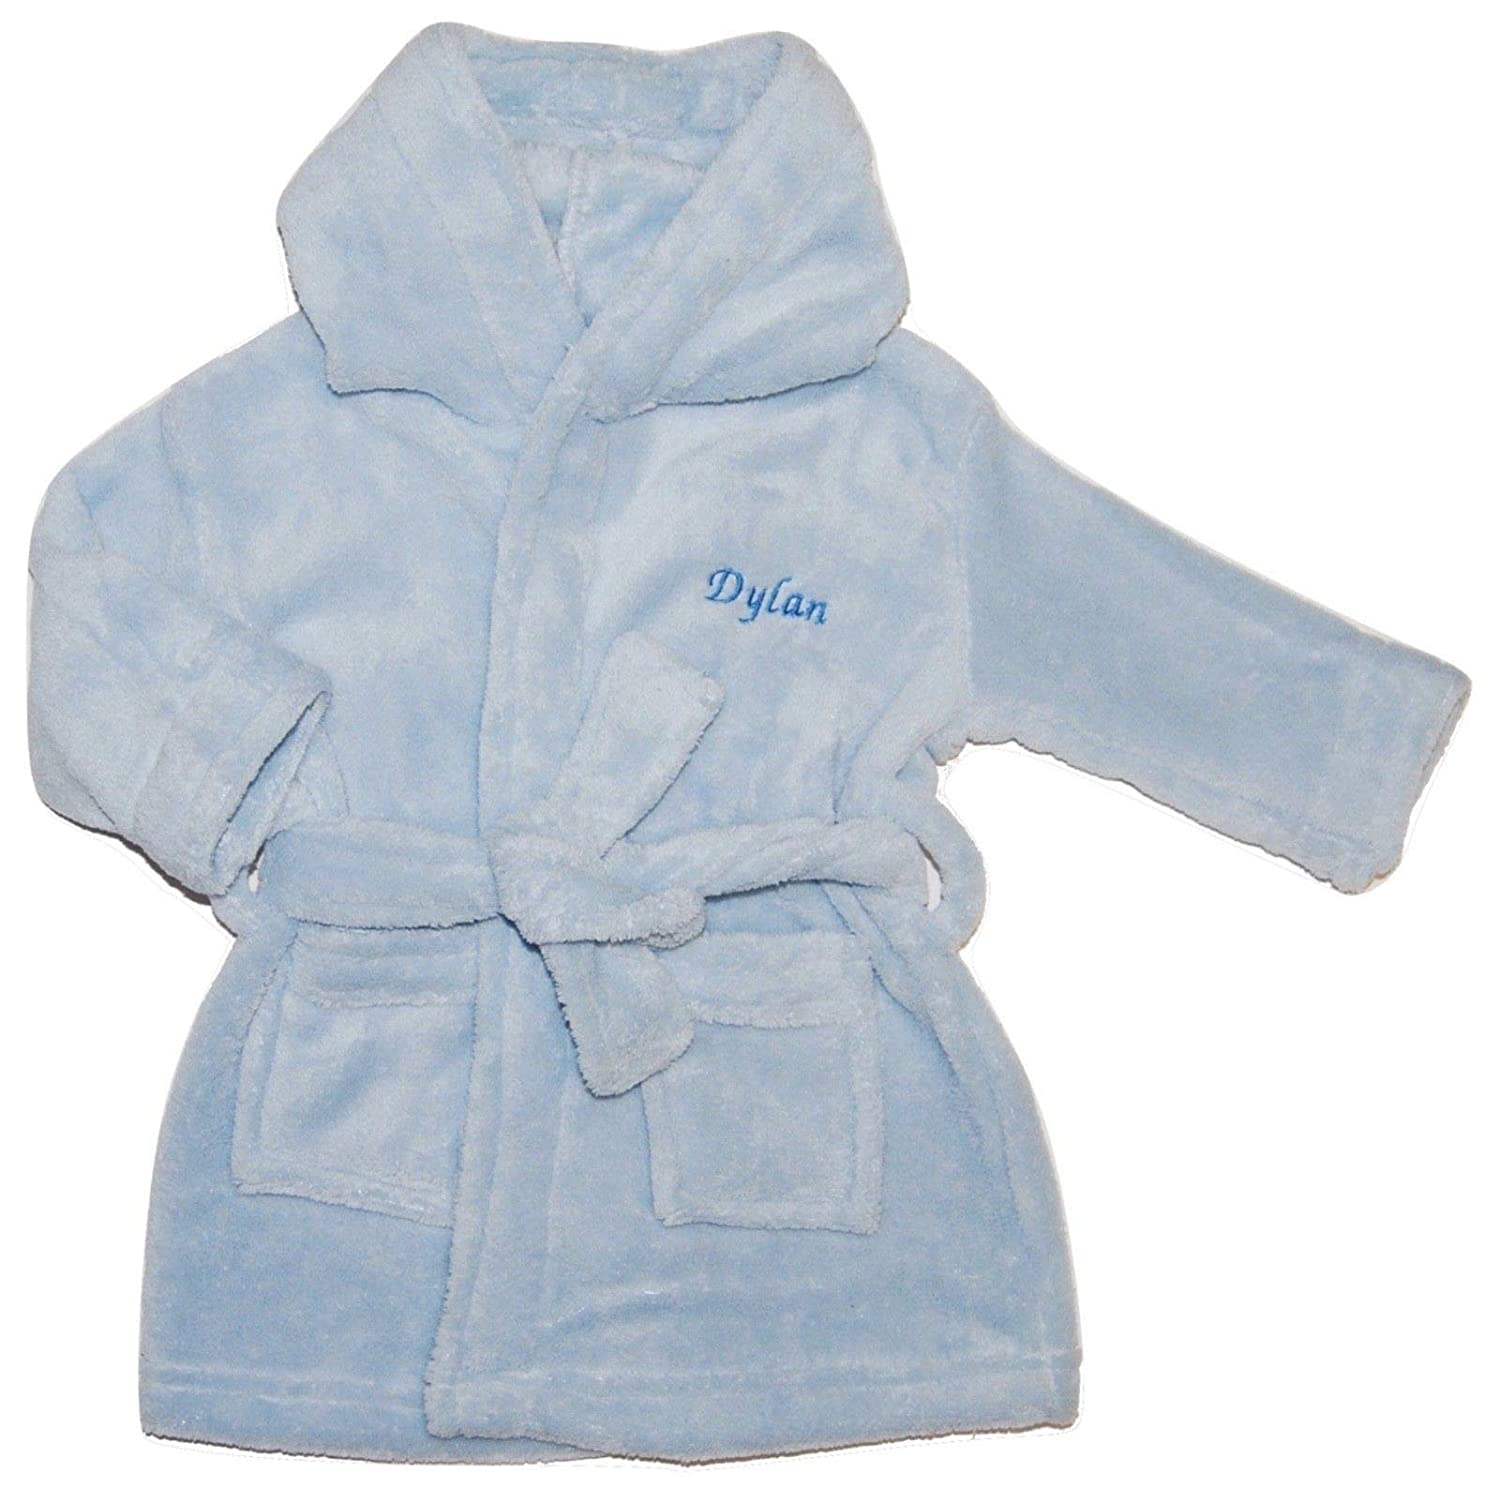 Nursery Time Baby Boy Personalised Dressing Gown Bathrobe Embroidered Blue (6-12 Months)